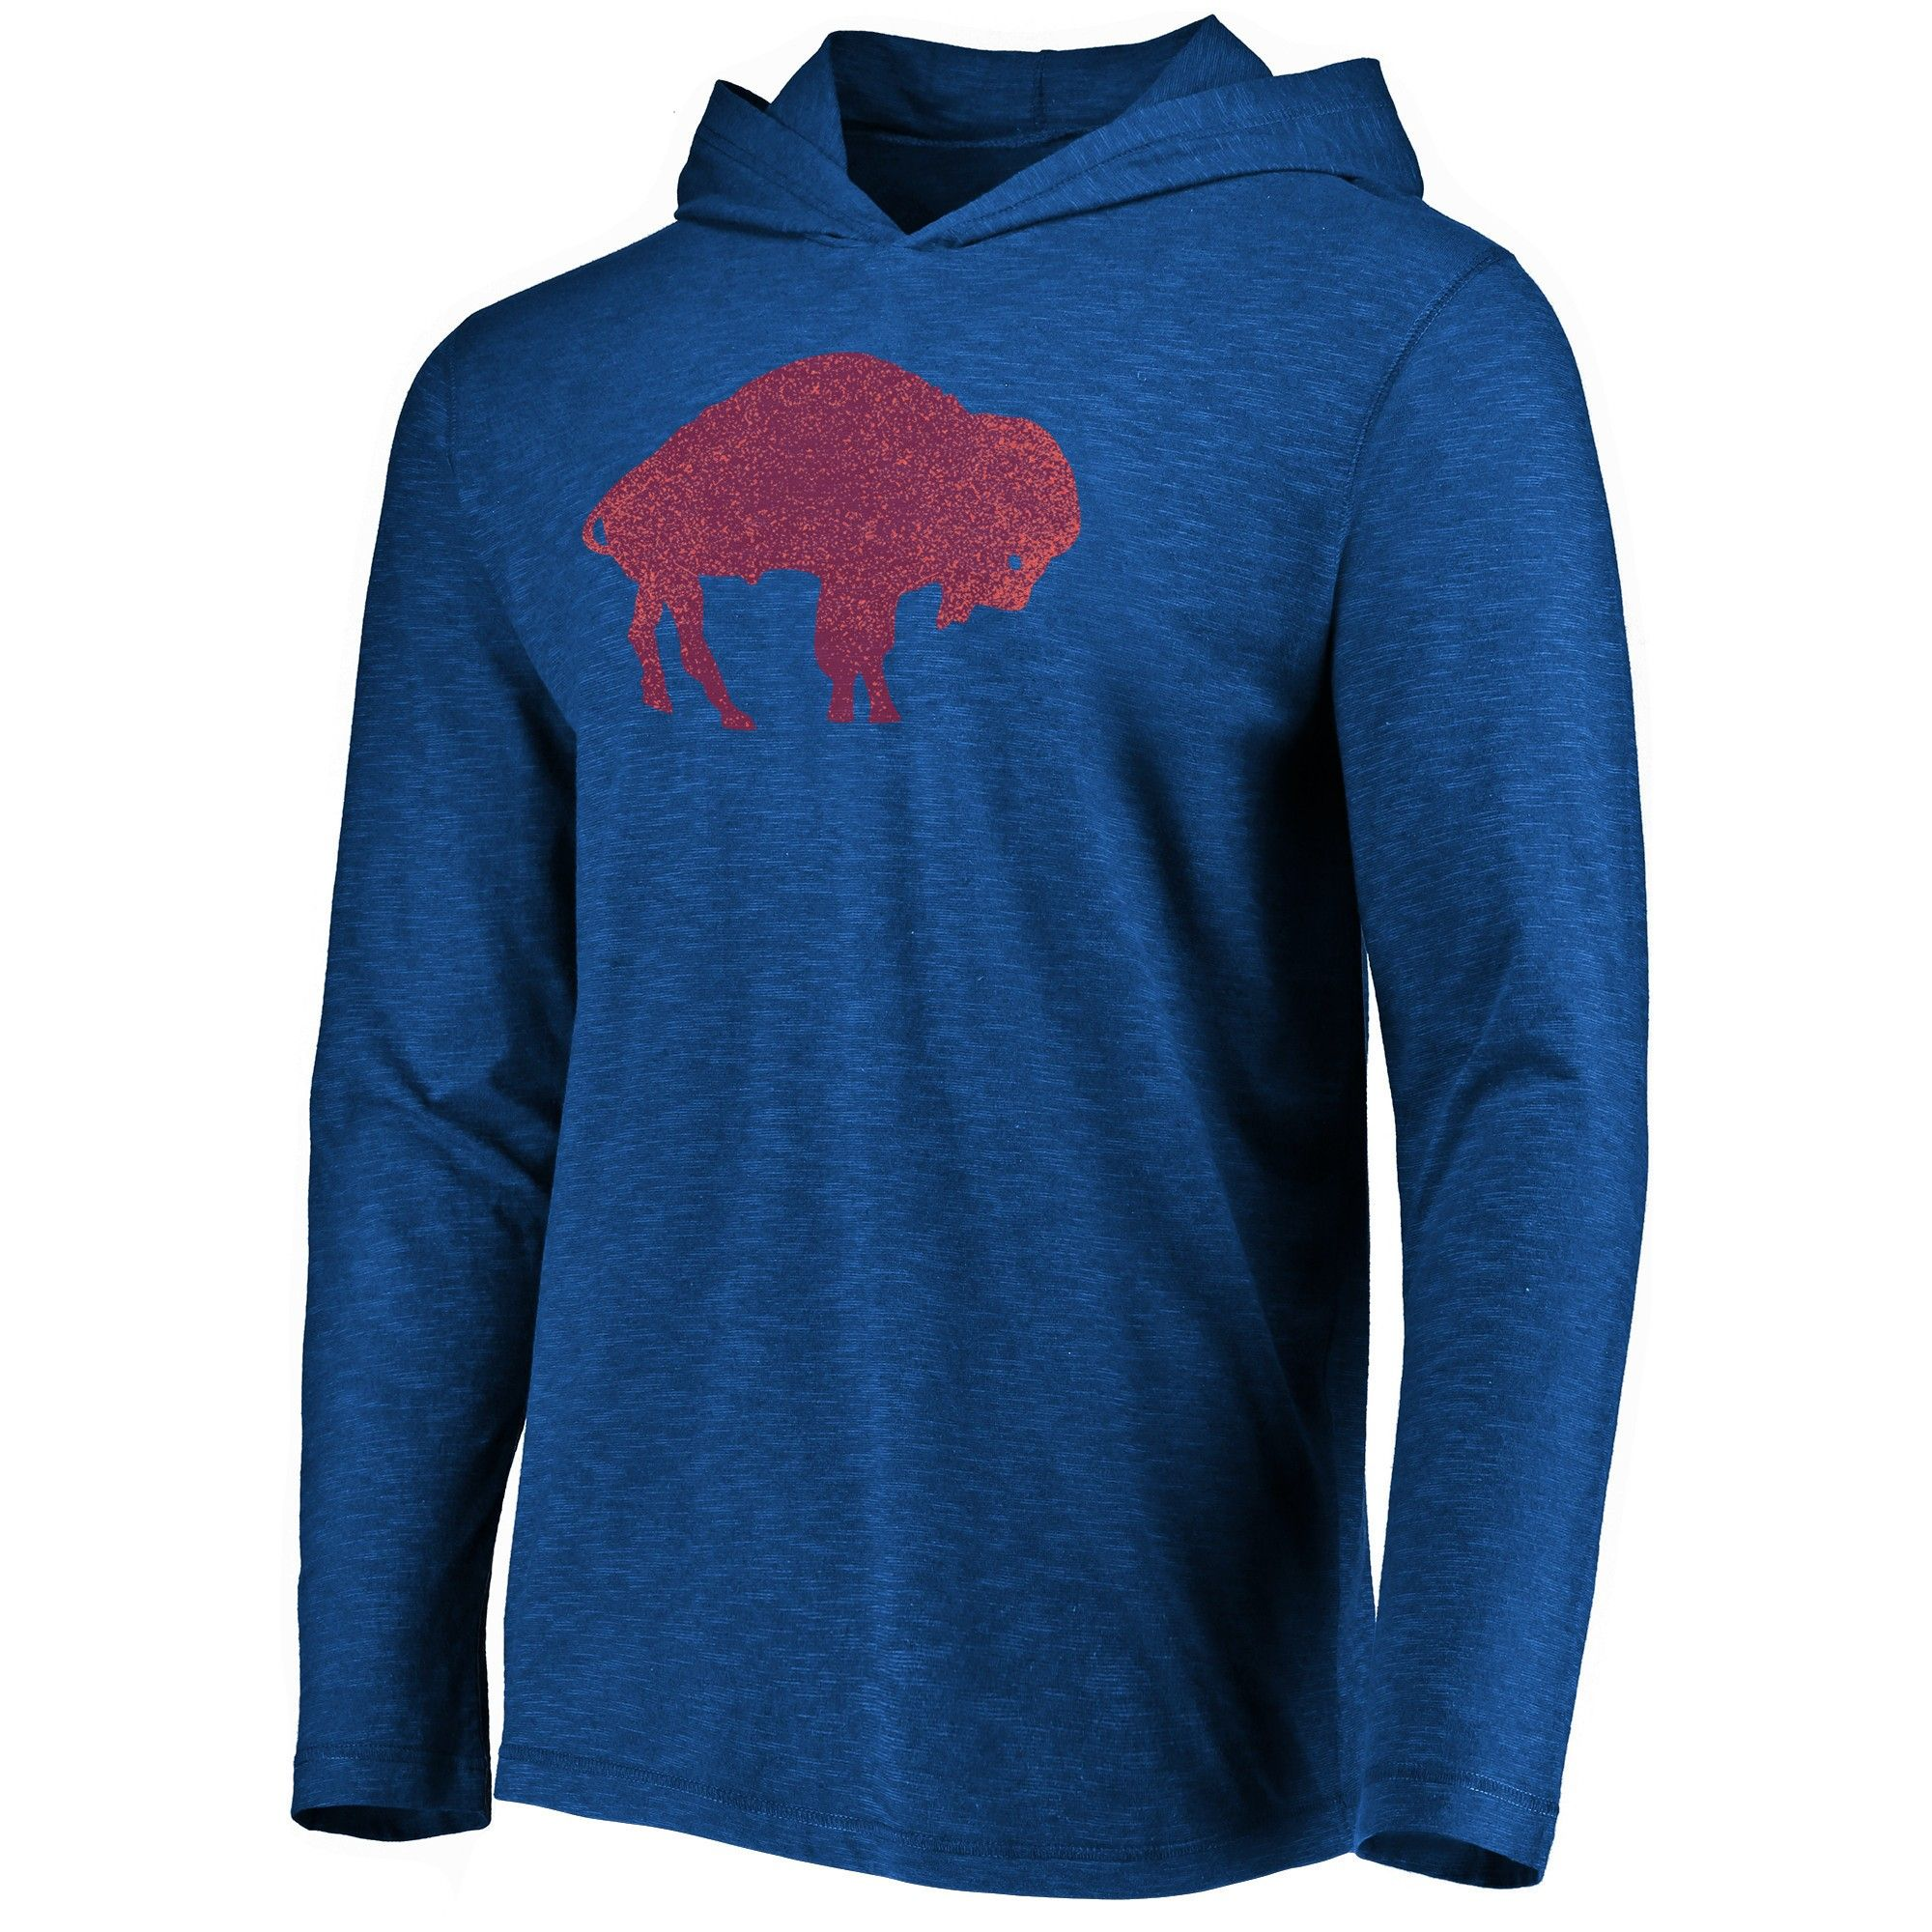 483c5a3a Buffalo Bills Men's Victory Lightweight Hoodie XL, Multicolored ...